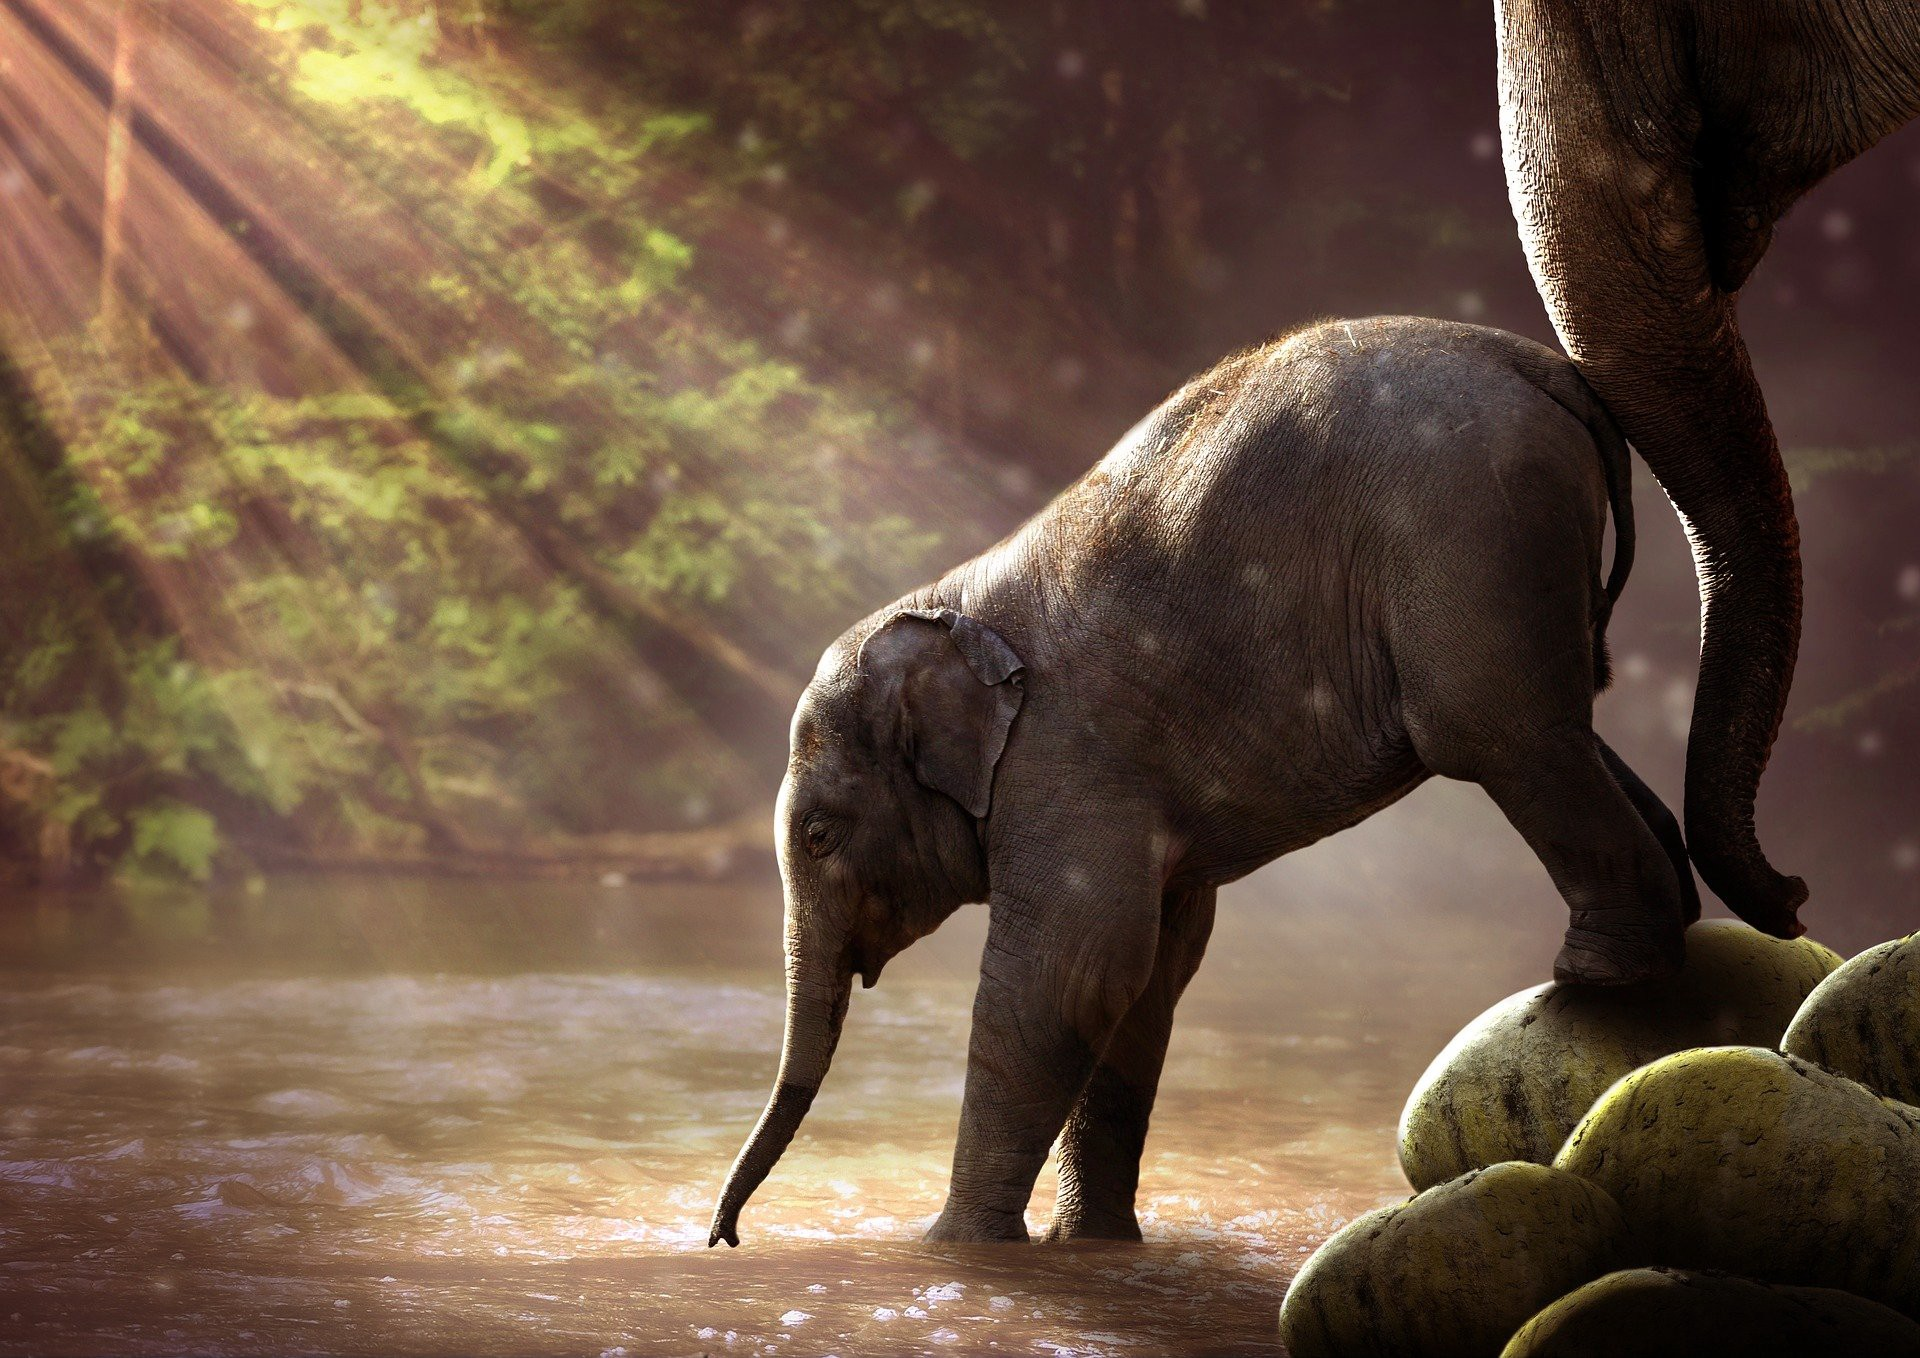 An adult elephant nudges a baby elephant towards a watering hole. Rays of light are shining through the trees.